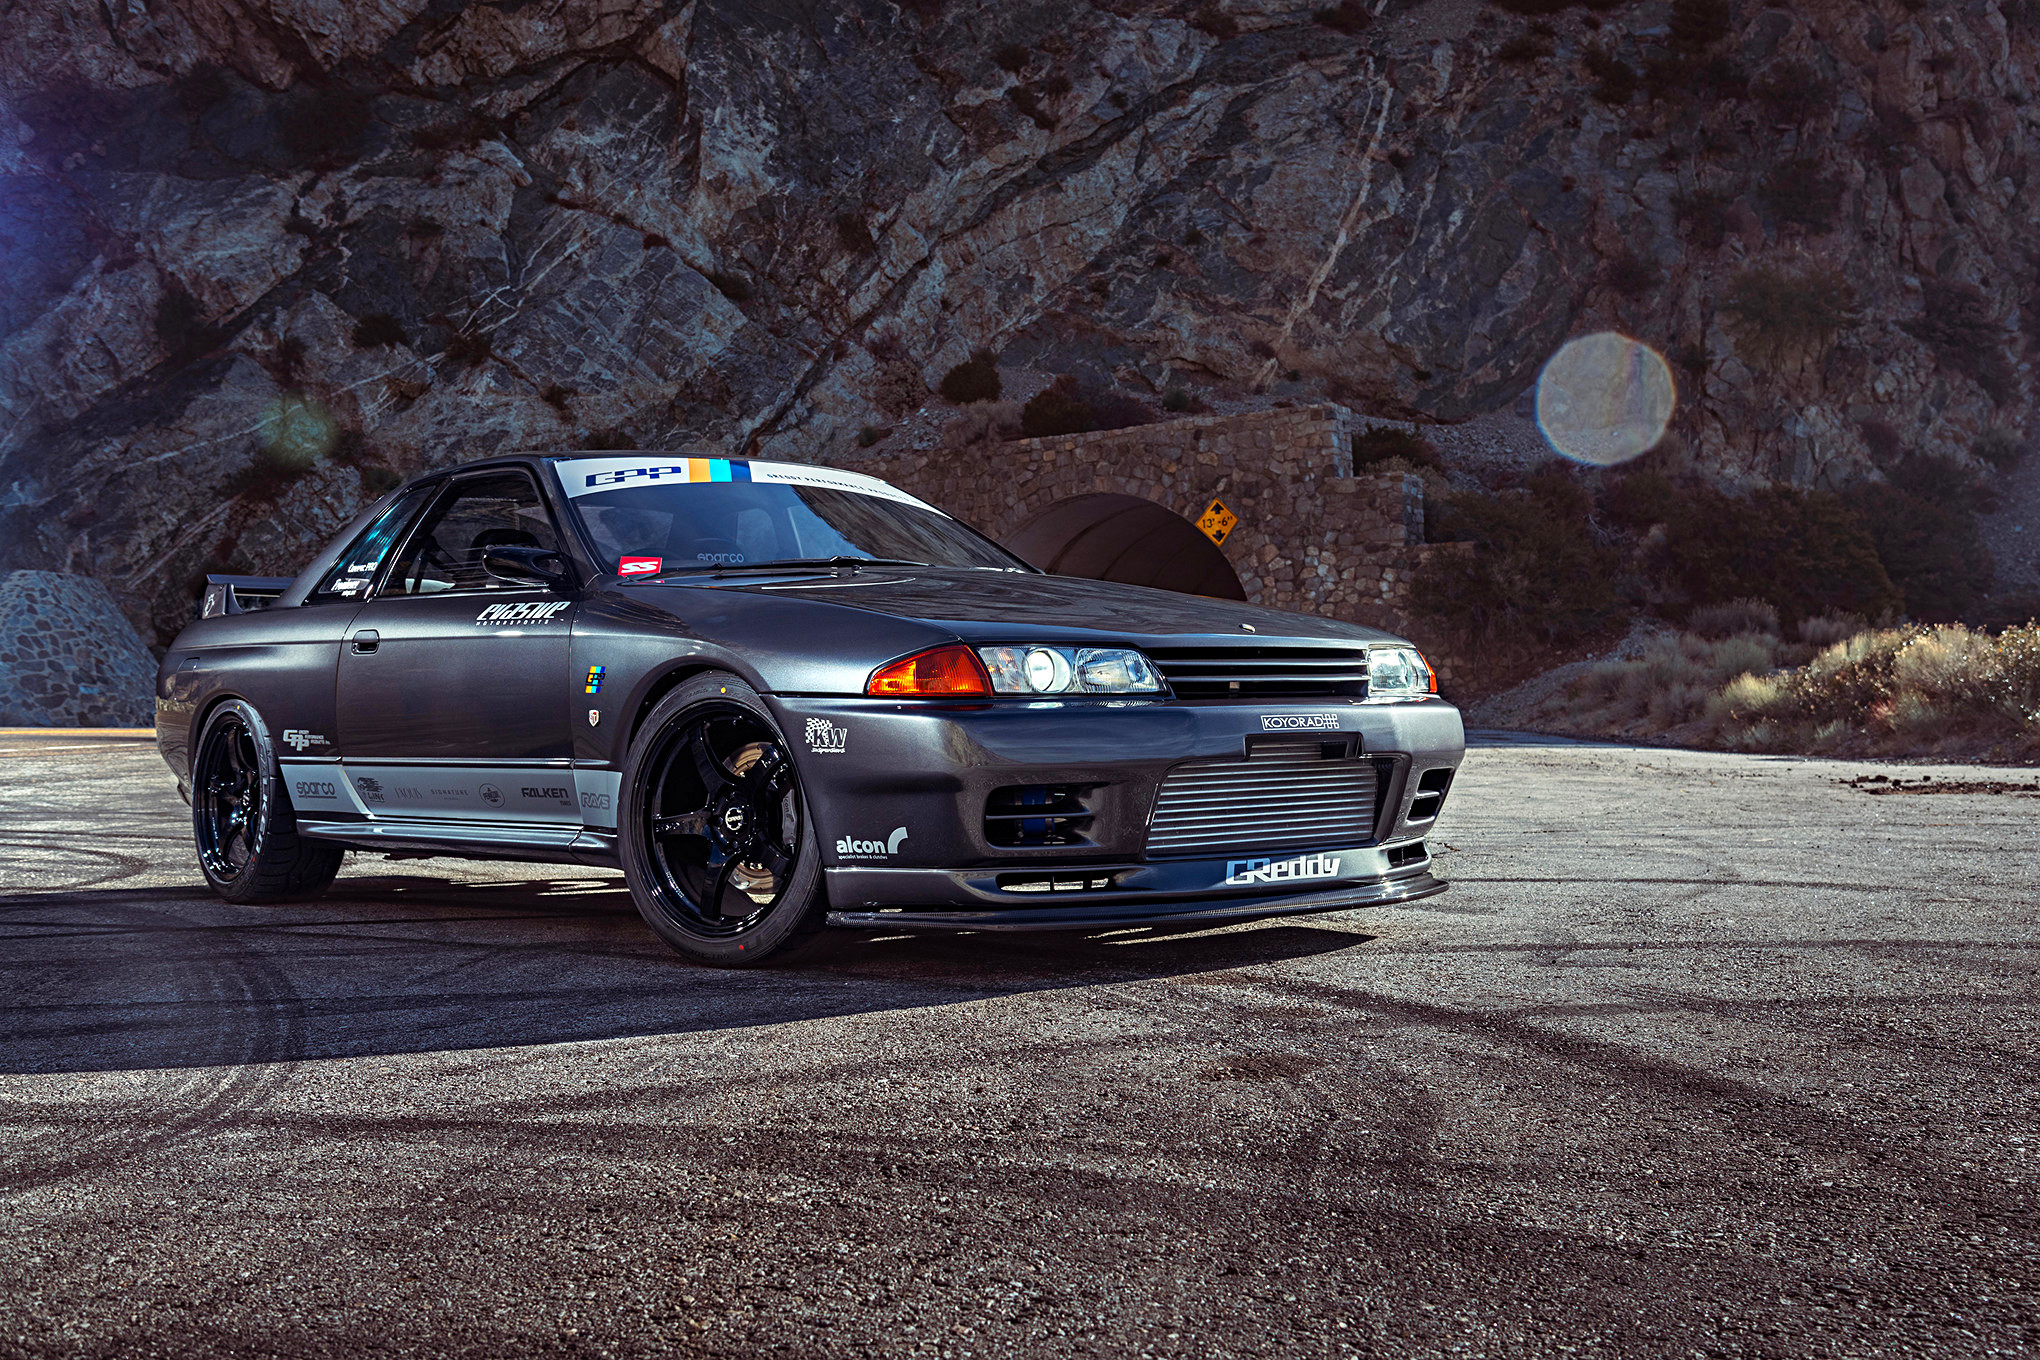 Greddy R32 GT-R California Legal